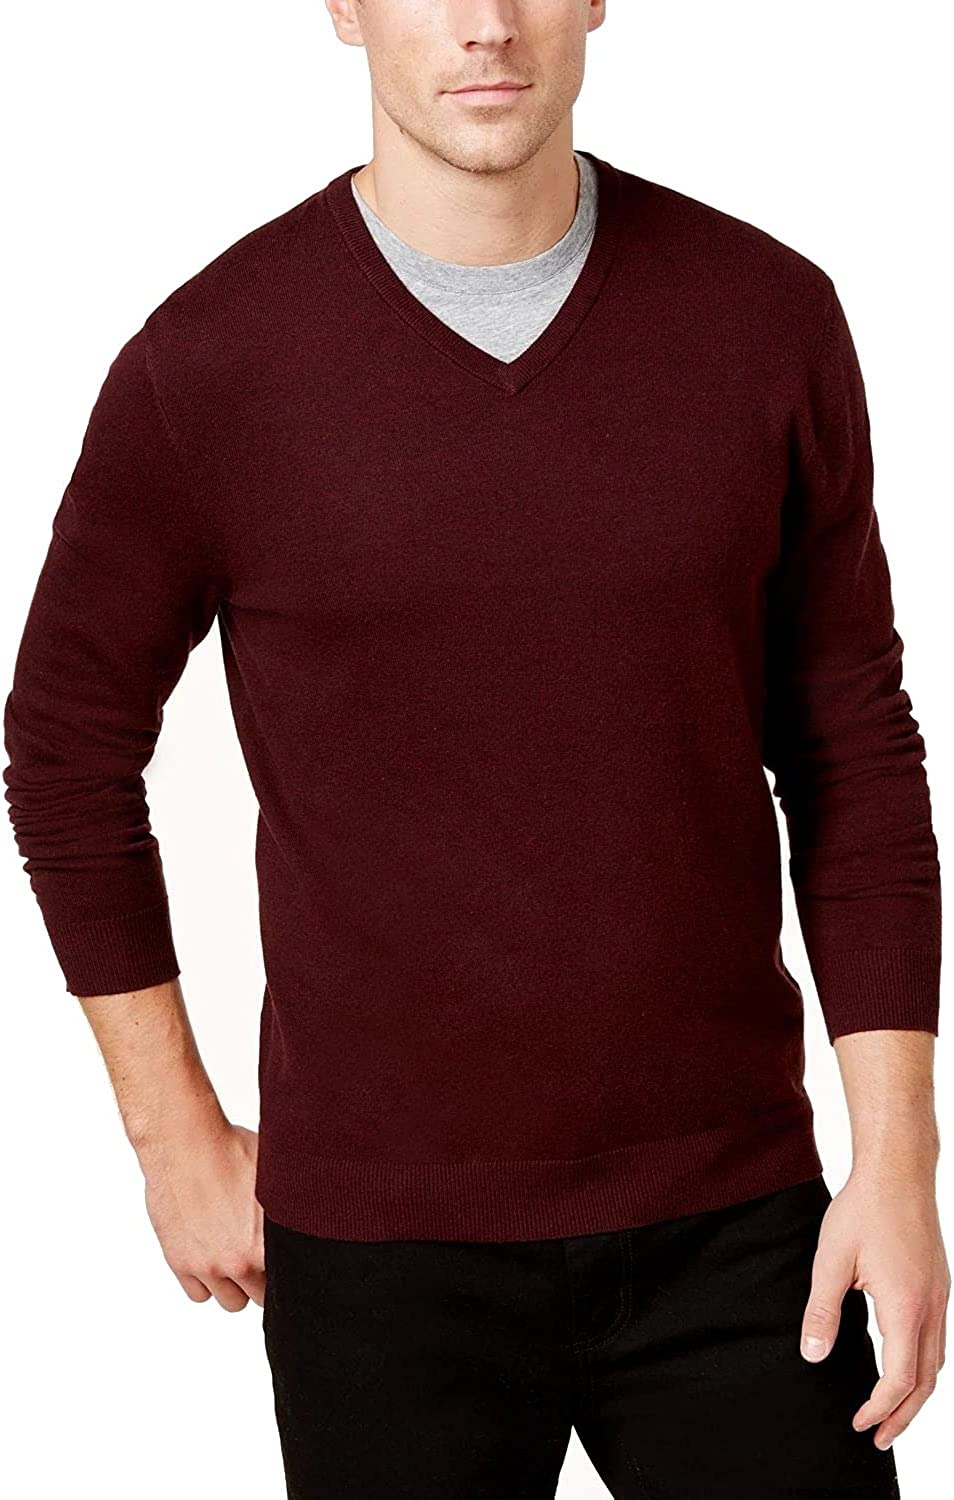 Alfani Mens Sweater Port Small V-Neck Solid Knit Pullover Red S